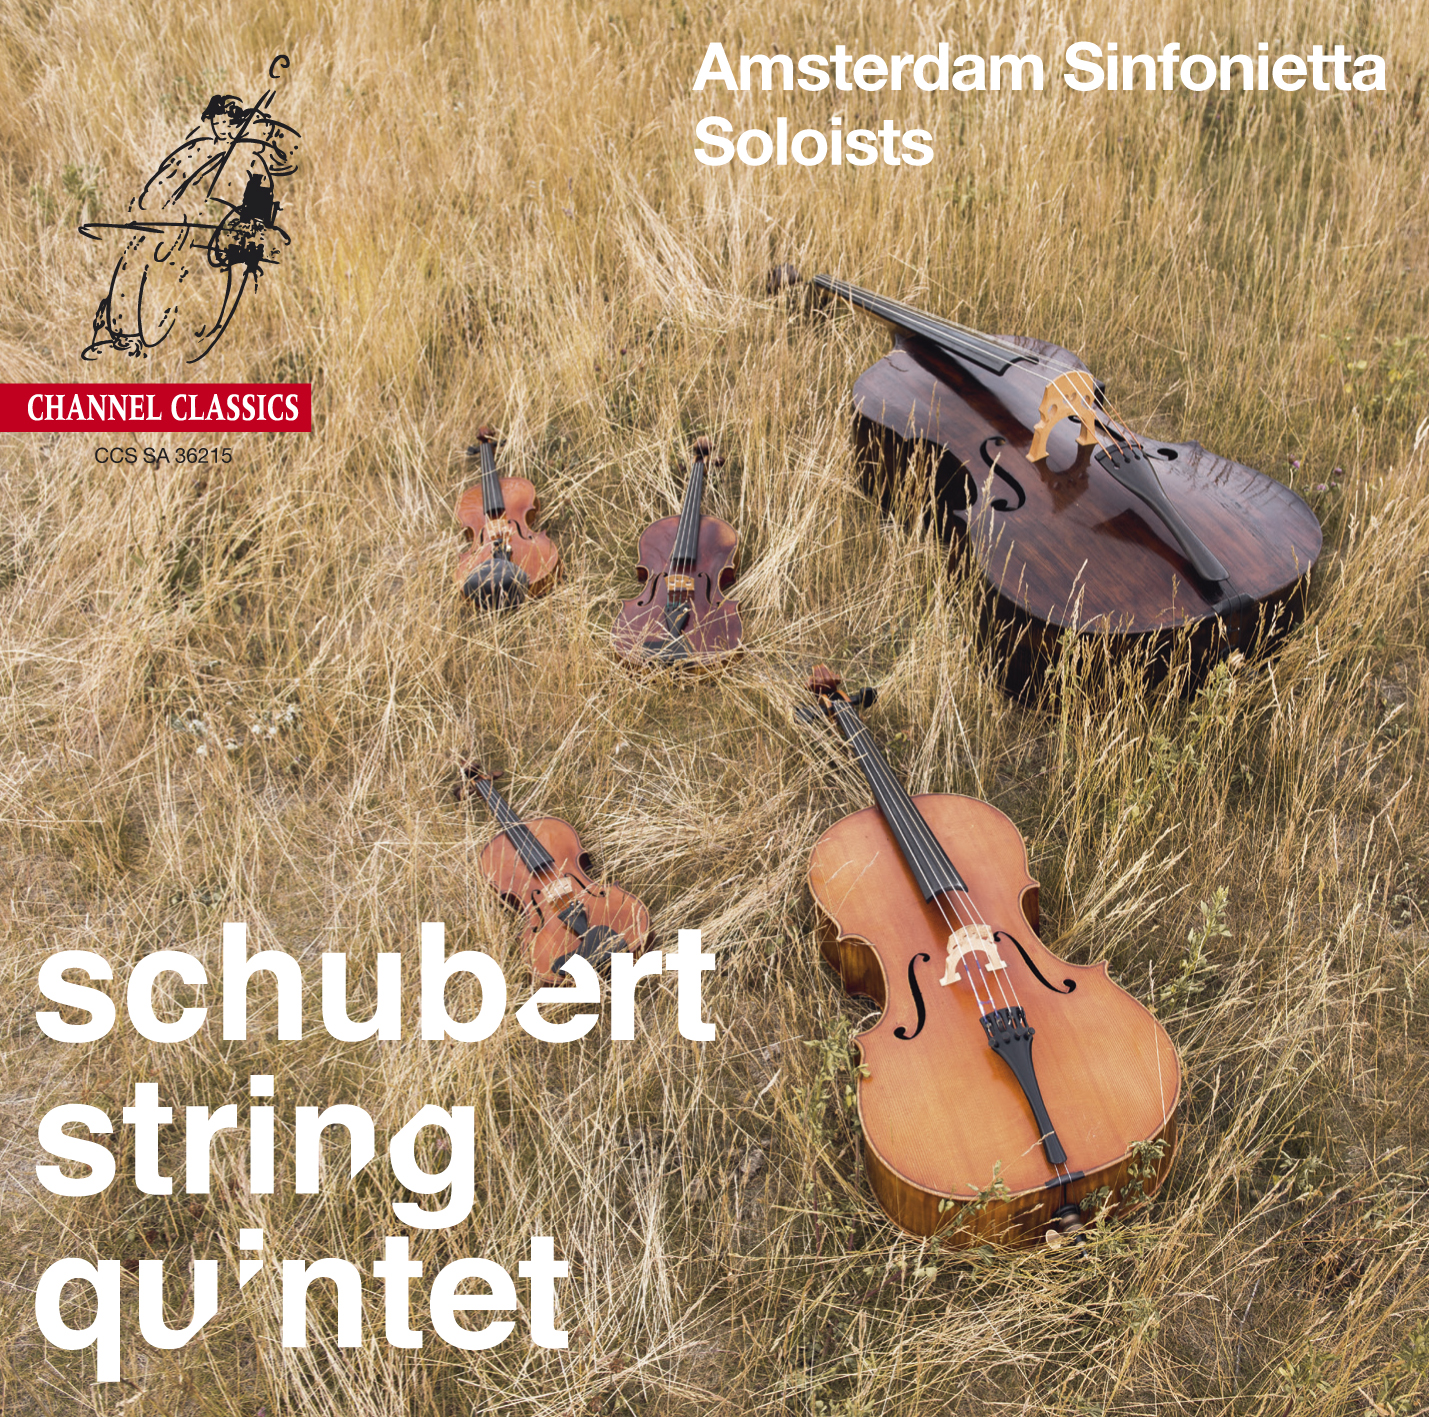 Schubert String Quintet in C